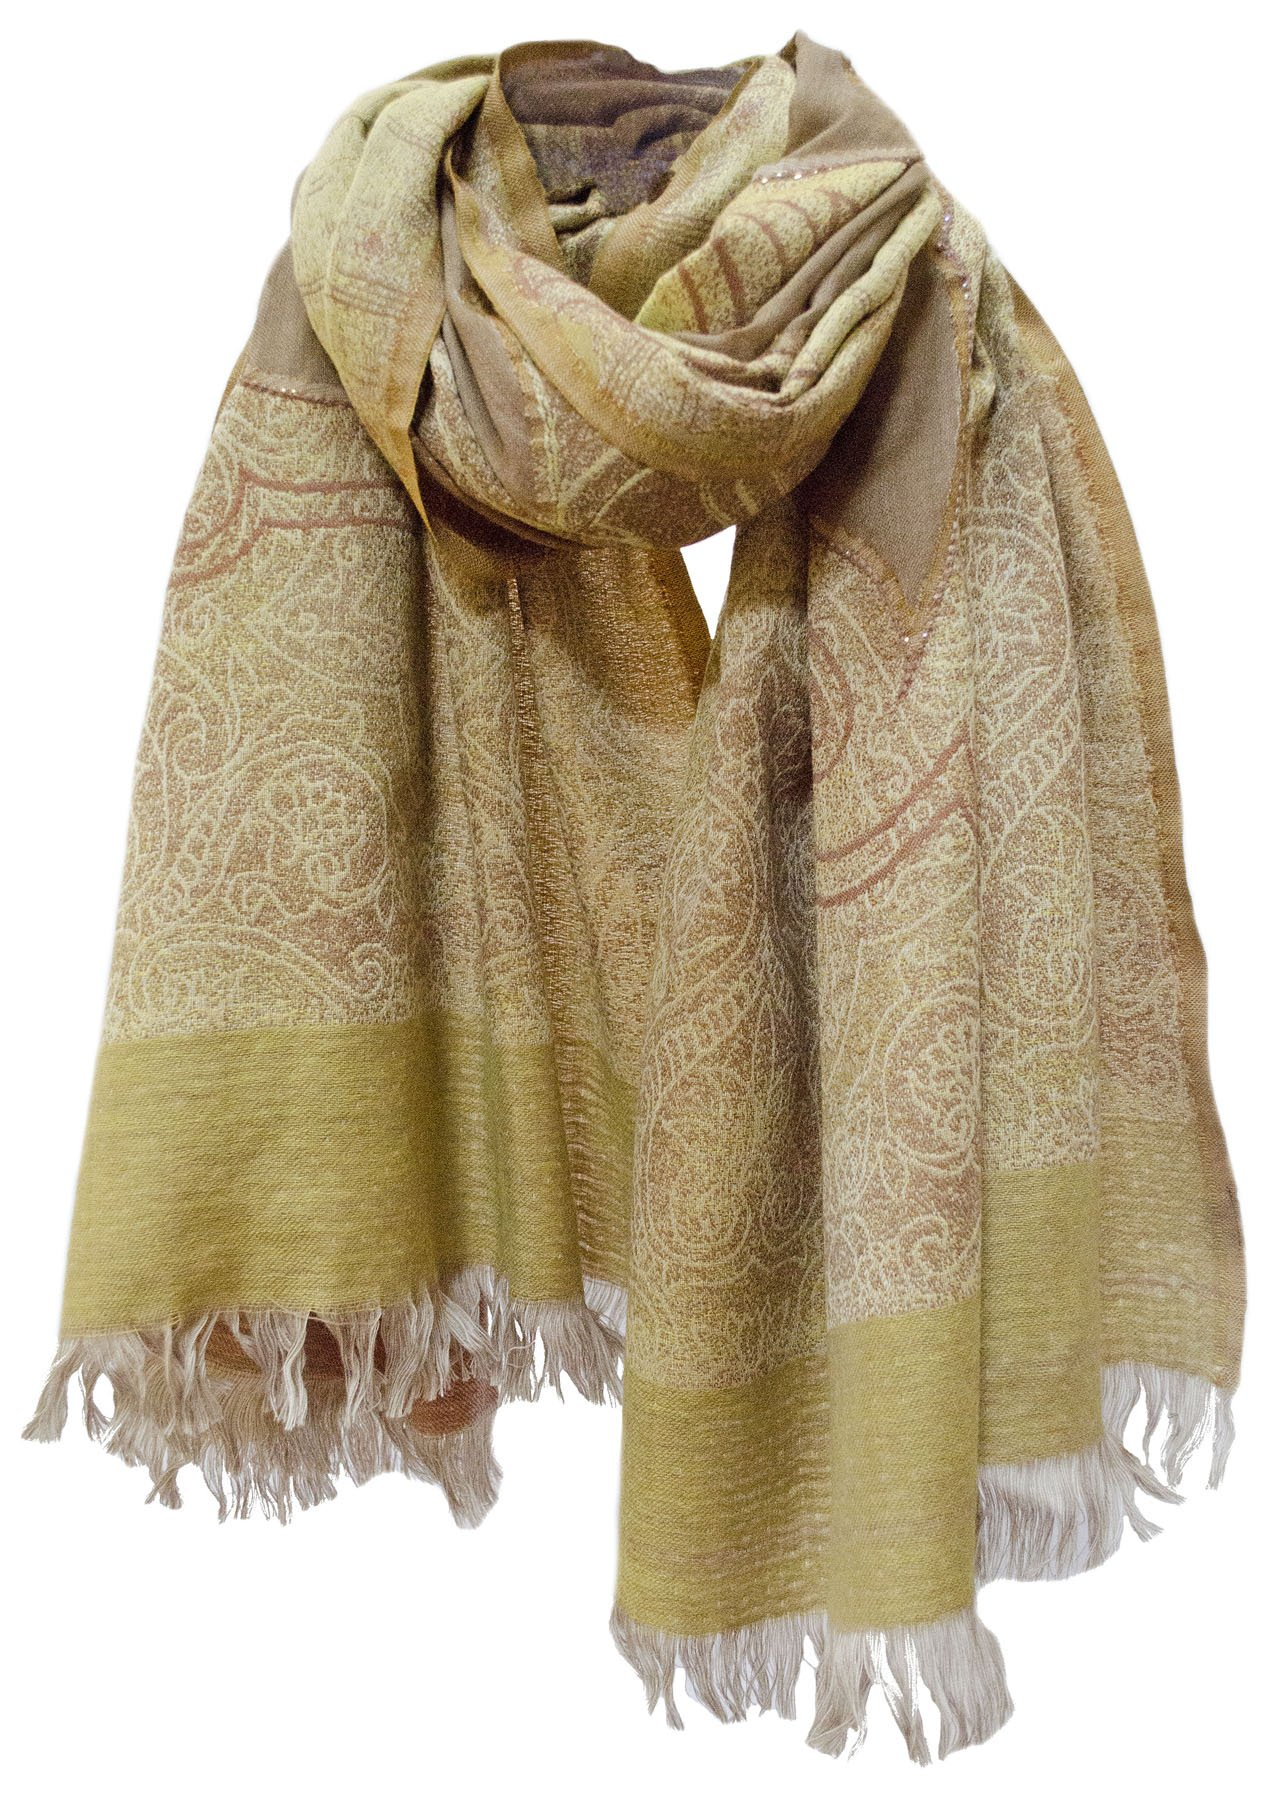 Sequin Cut Work Merino Wool Shawl Wrap Stole Scarf Throw Gold Mustard Khaki